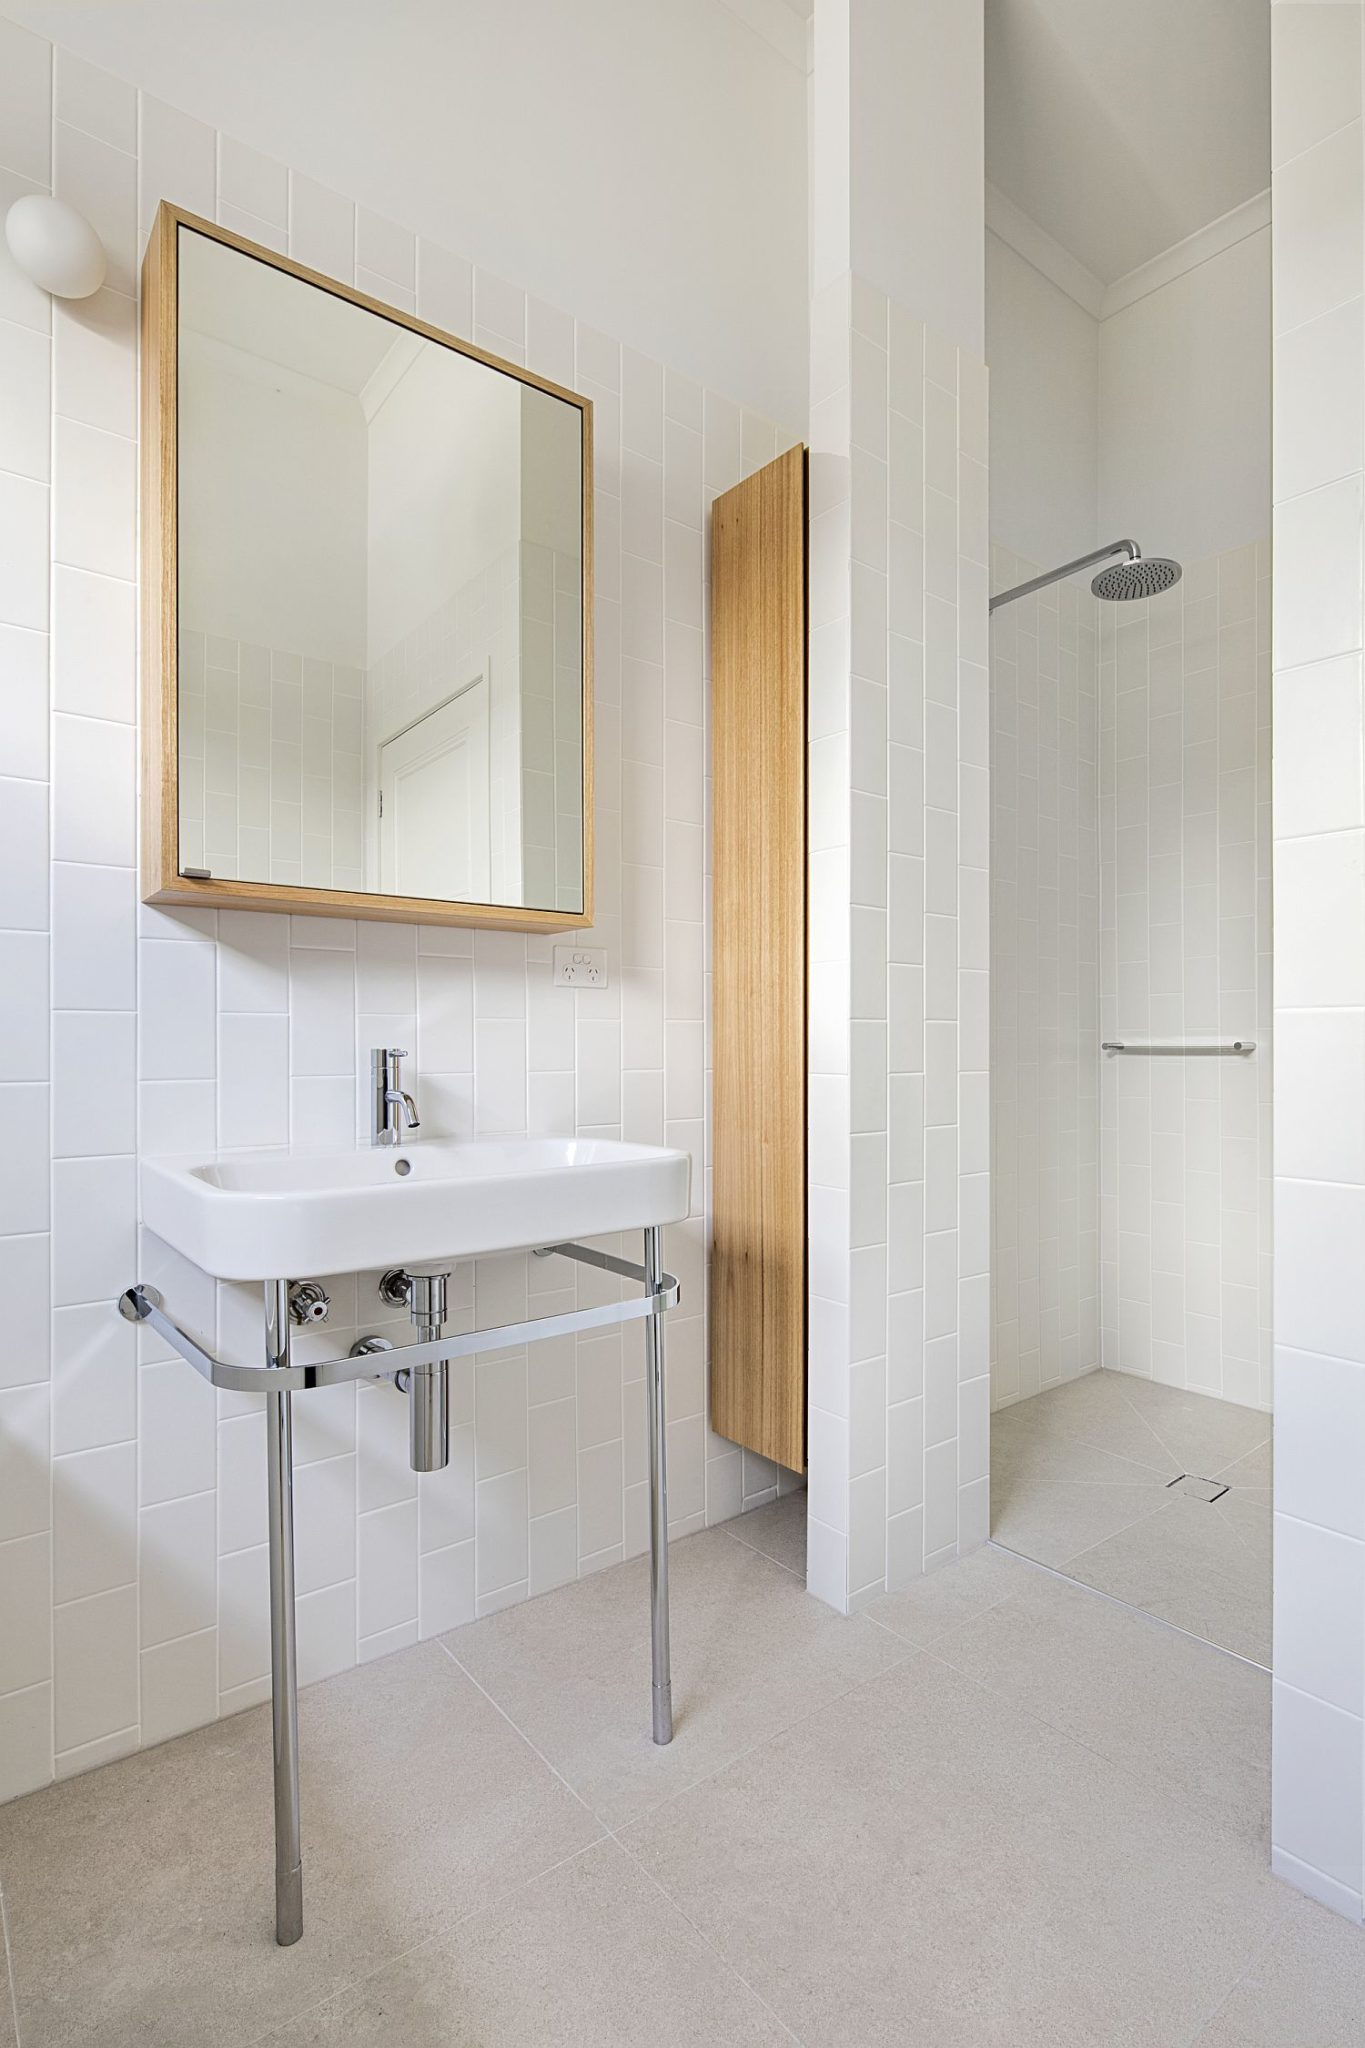 Slim sink for the small, space-savvy bathroom